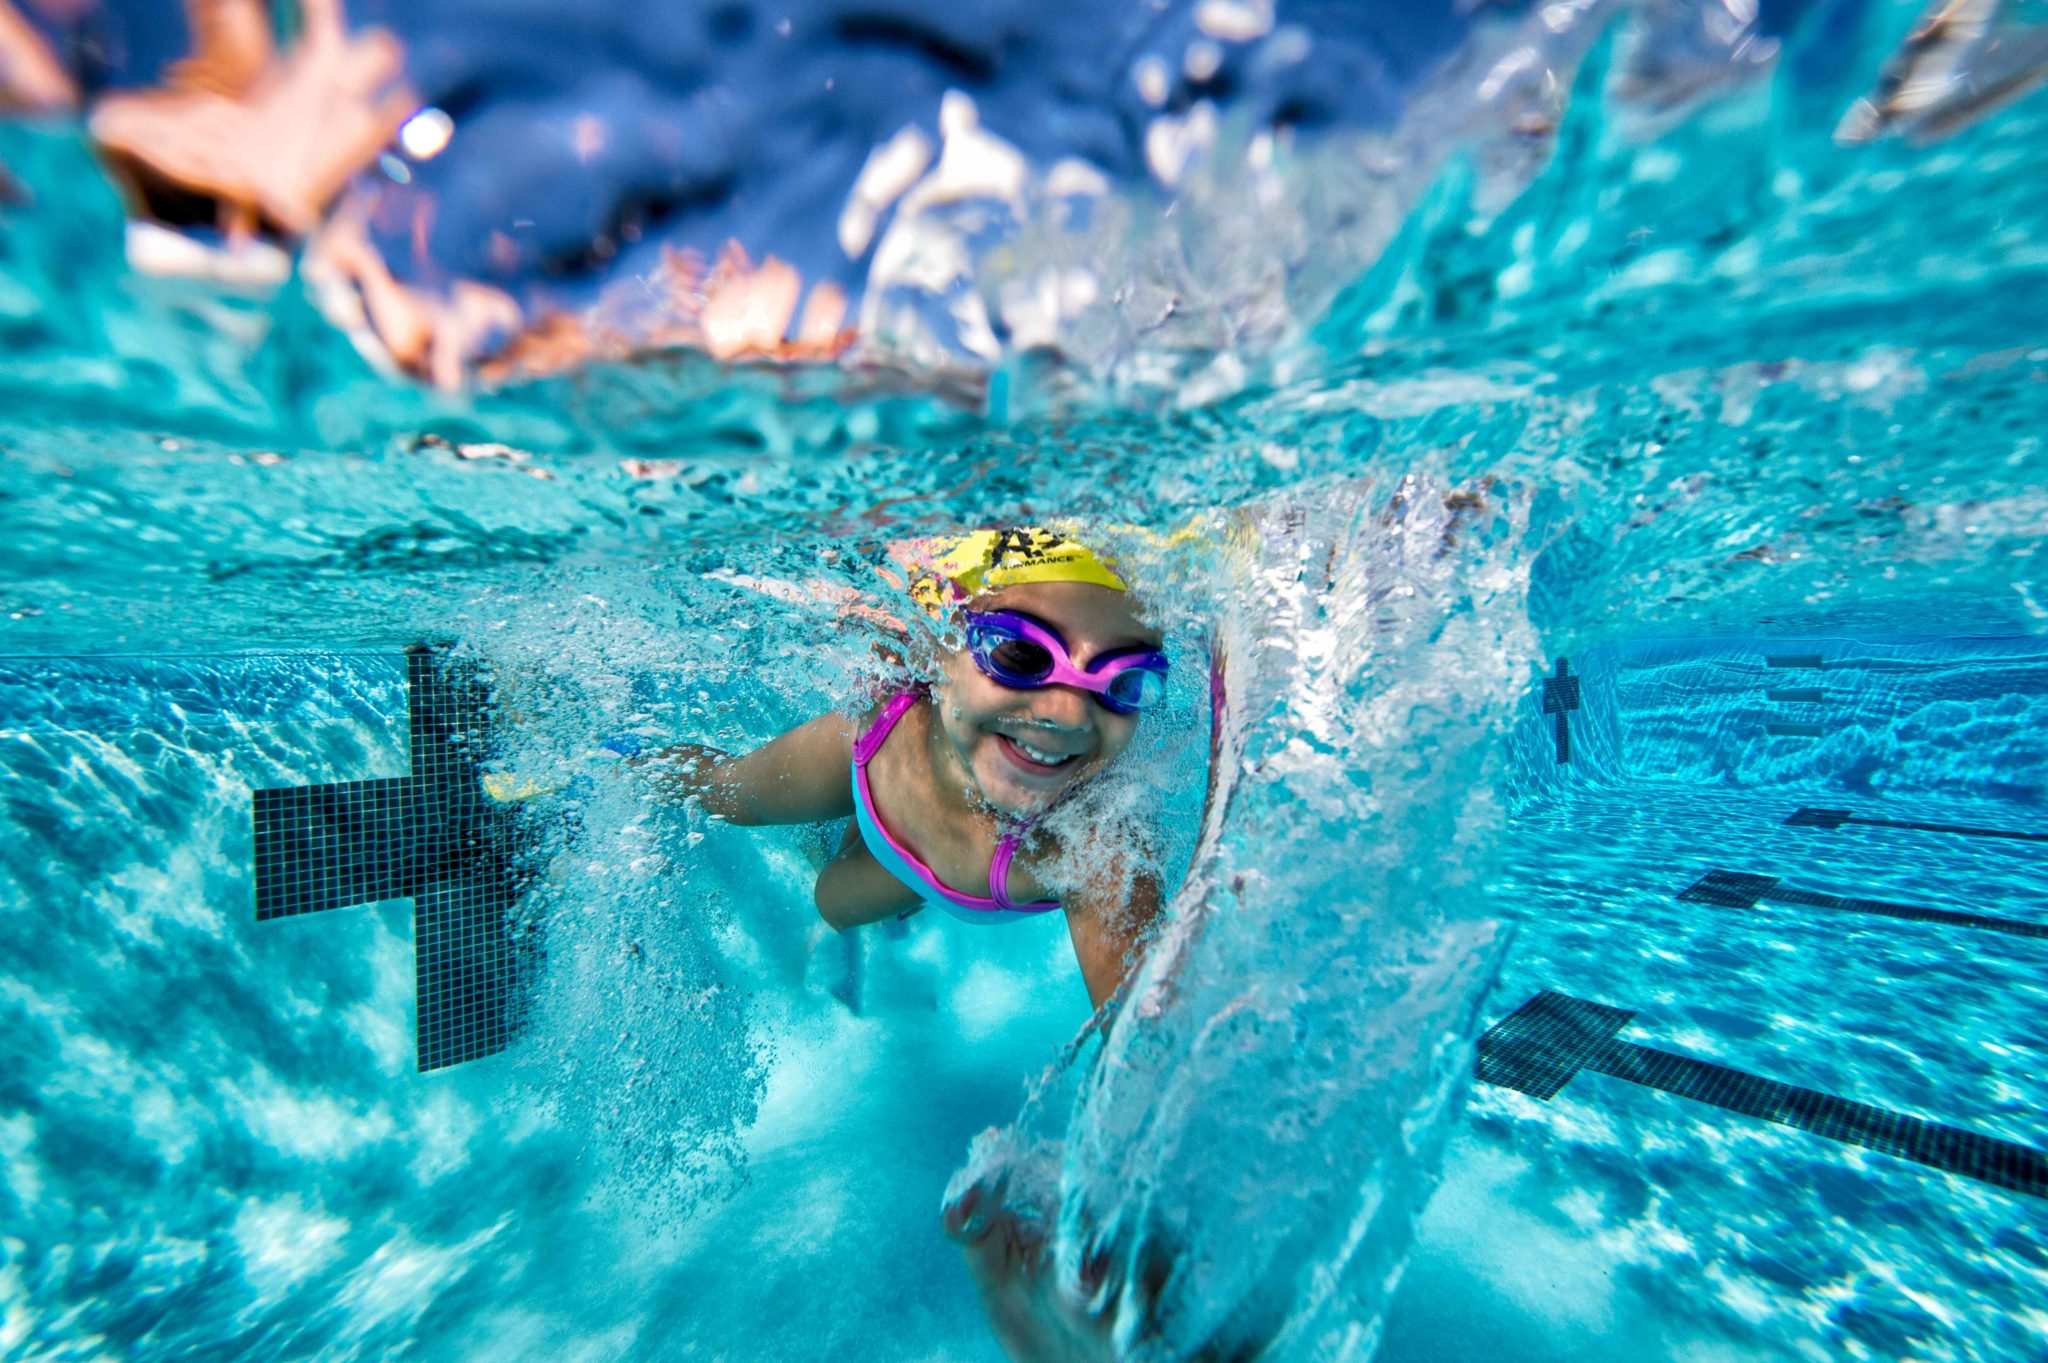 When Should Kids Start Swim Lessons? - Verywell Family